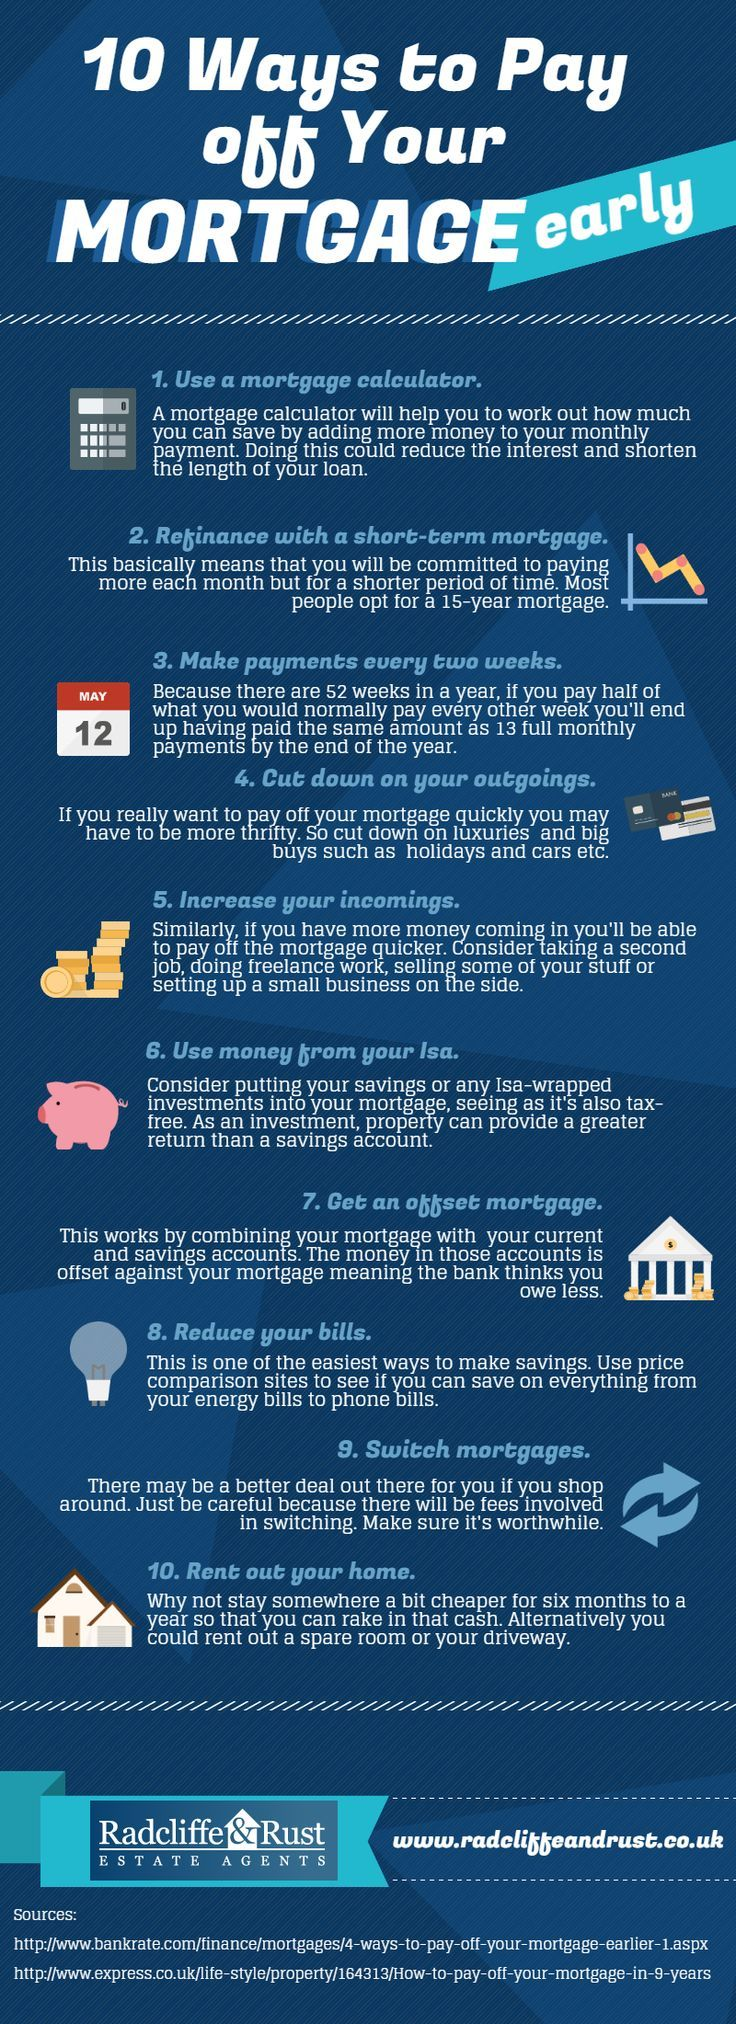 Payoff Mortgage Early Or Invest  The Complete Guide   Years